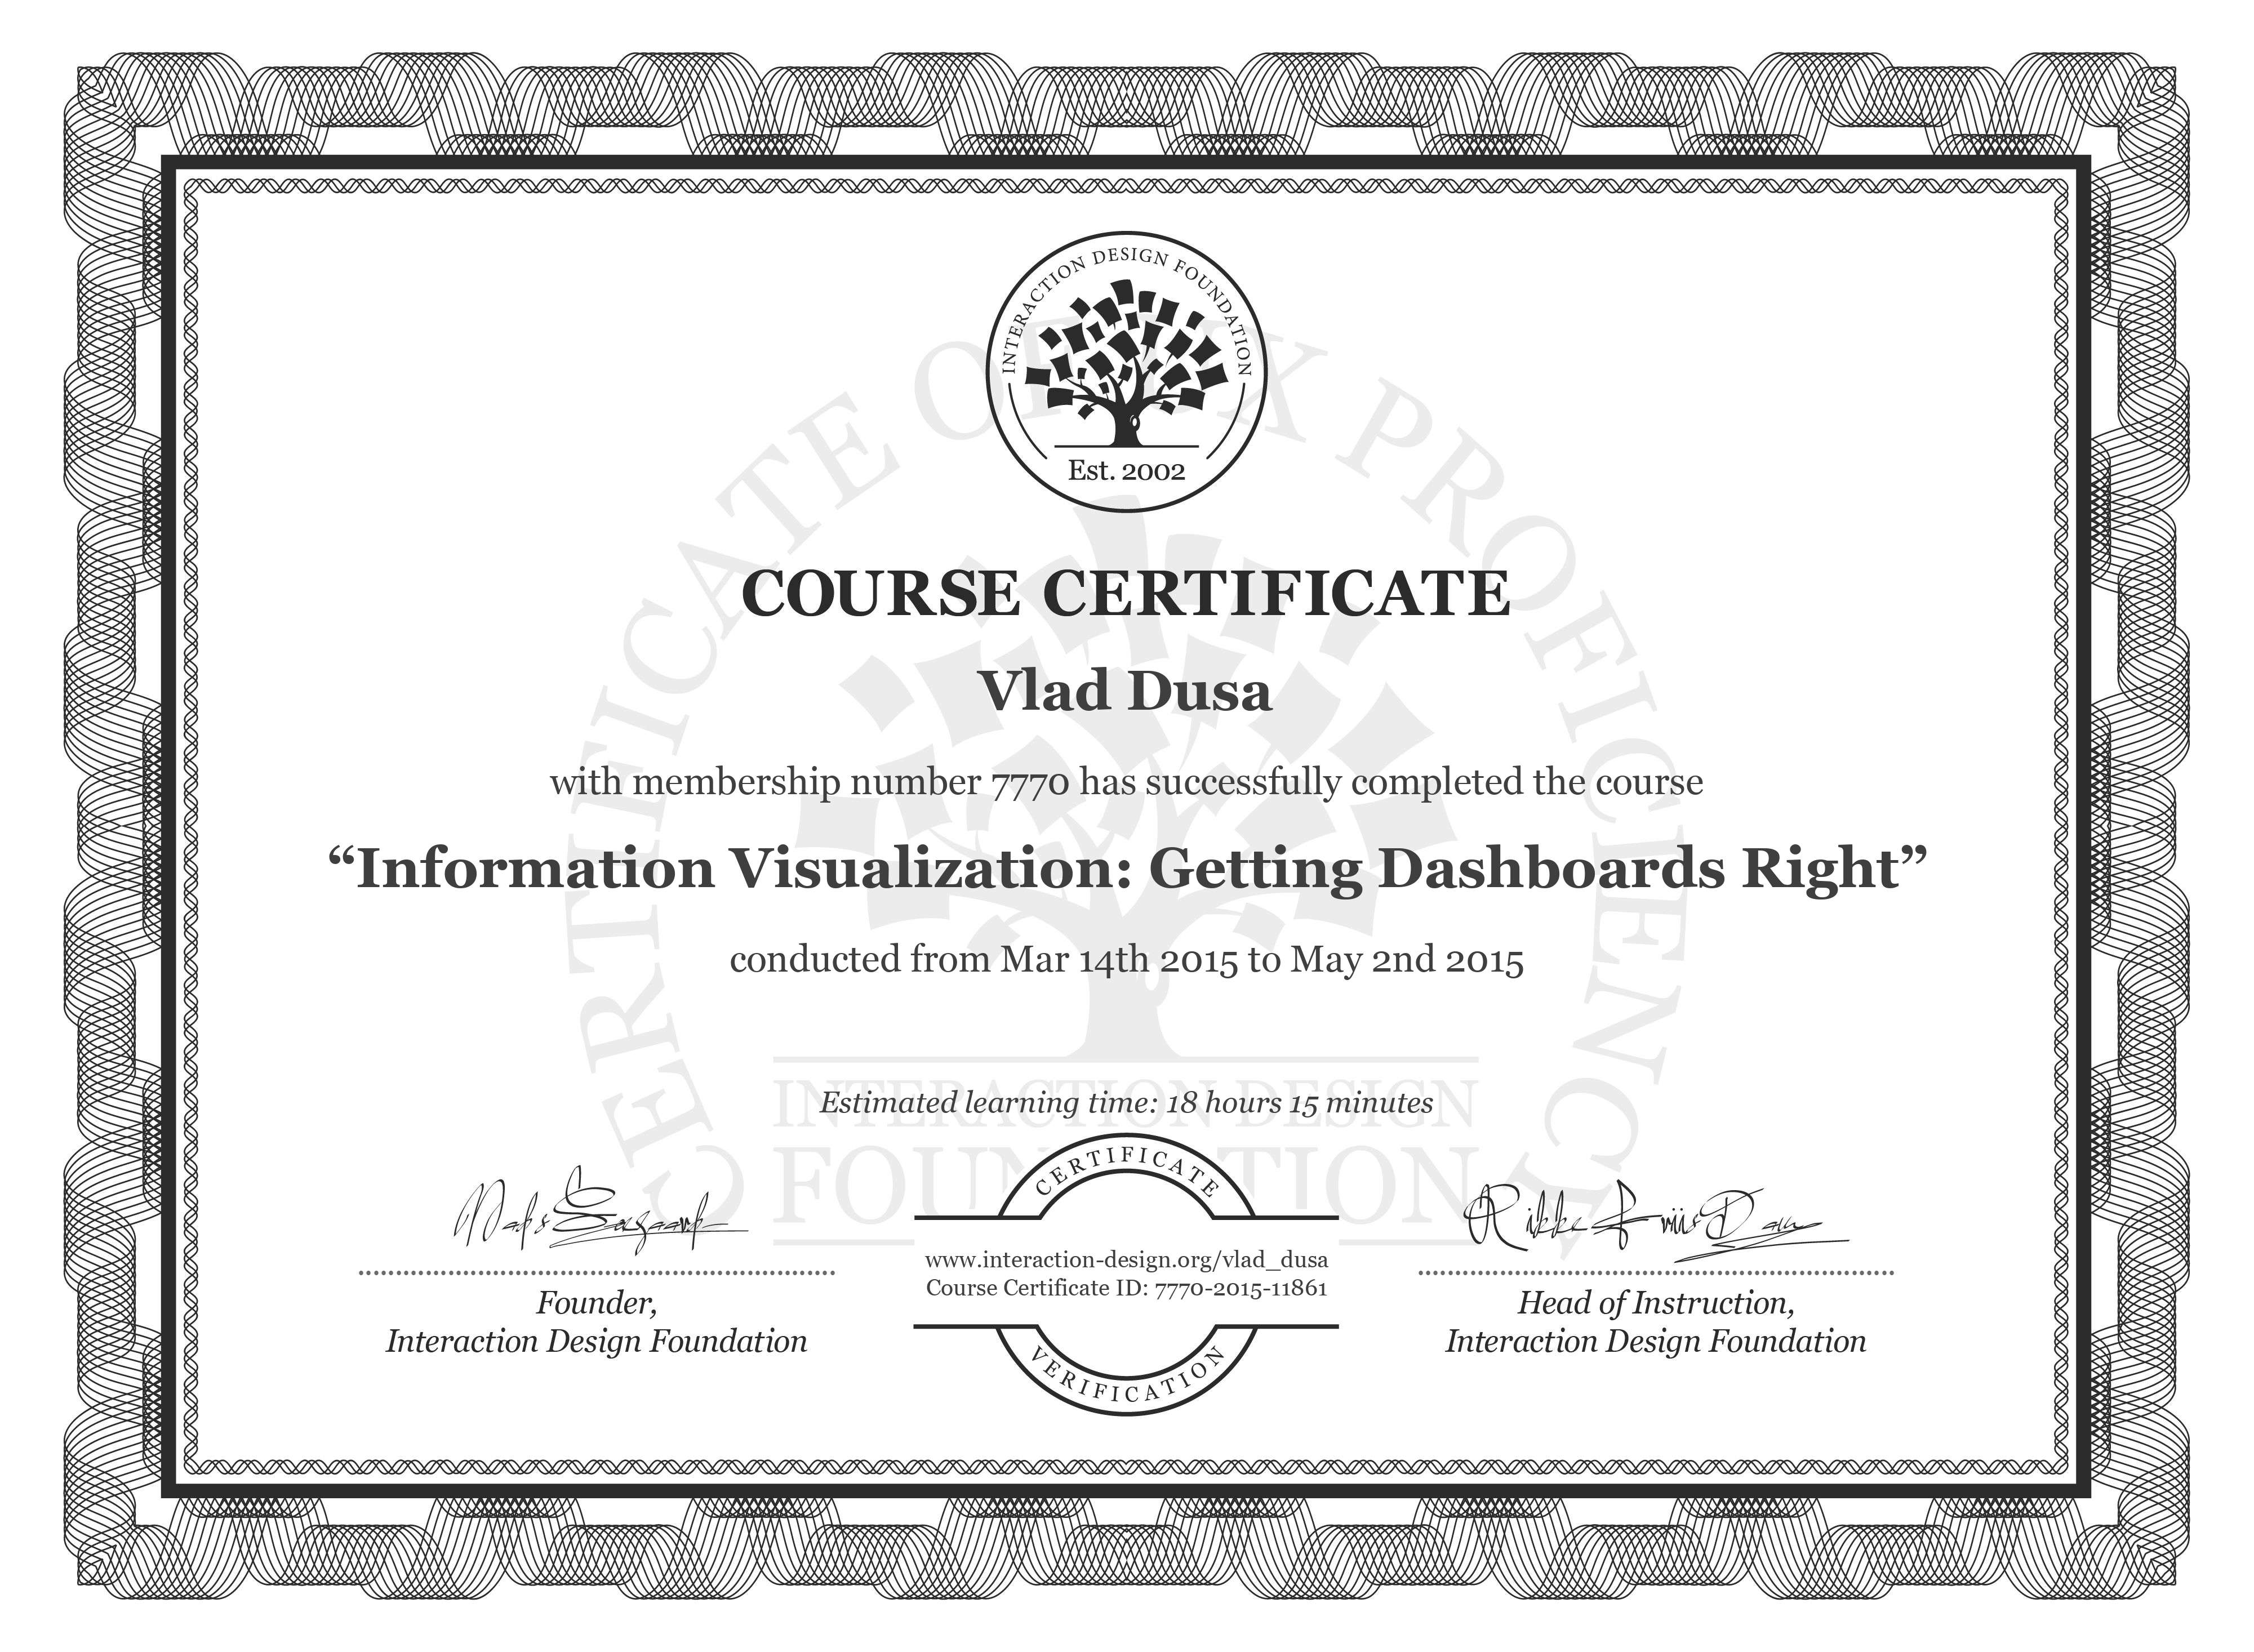 Vlad Dusa's Course Certificate: Information Visualization: Getting Dashboards Right